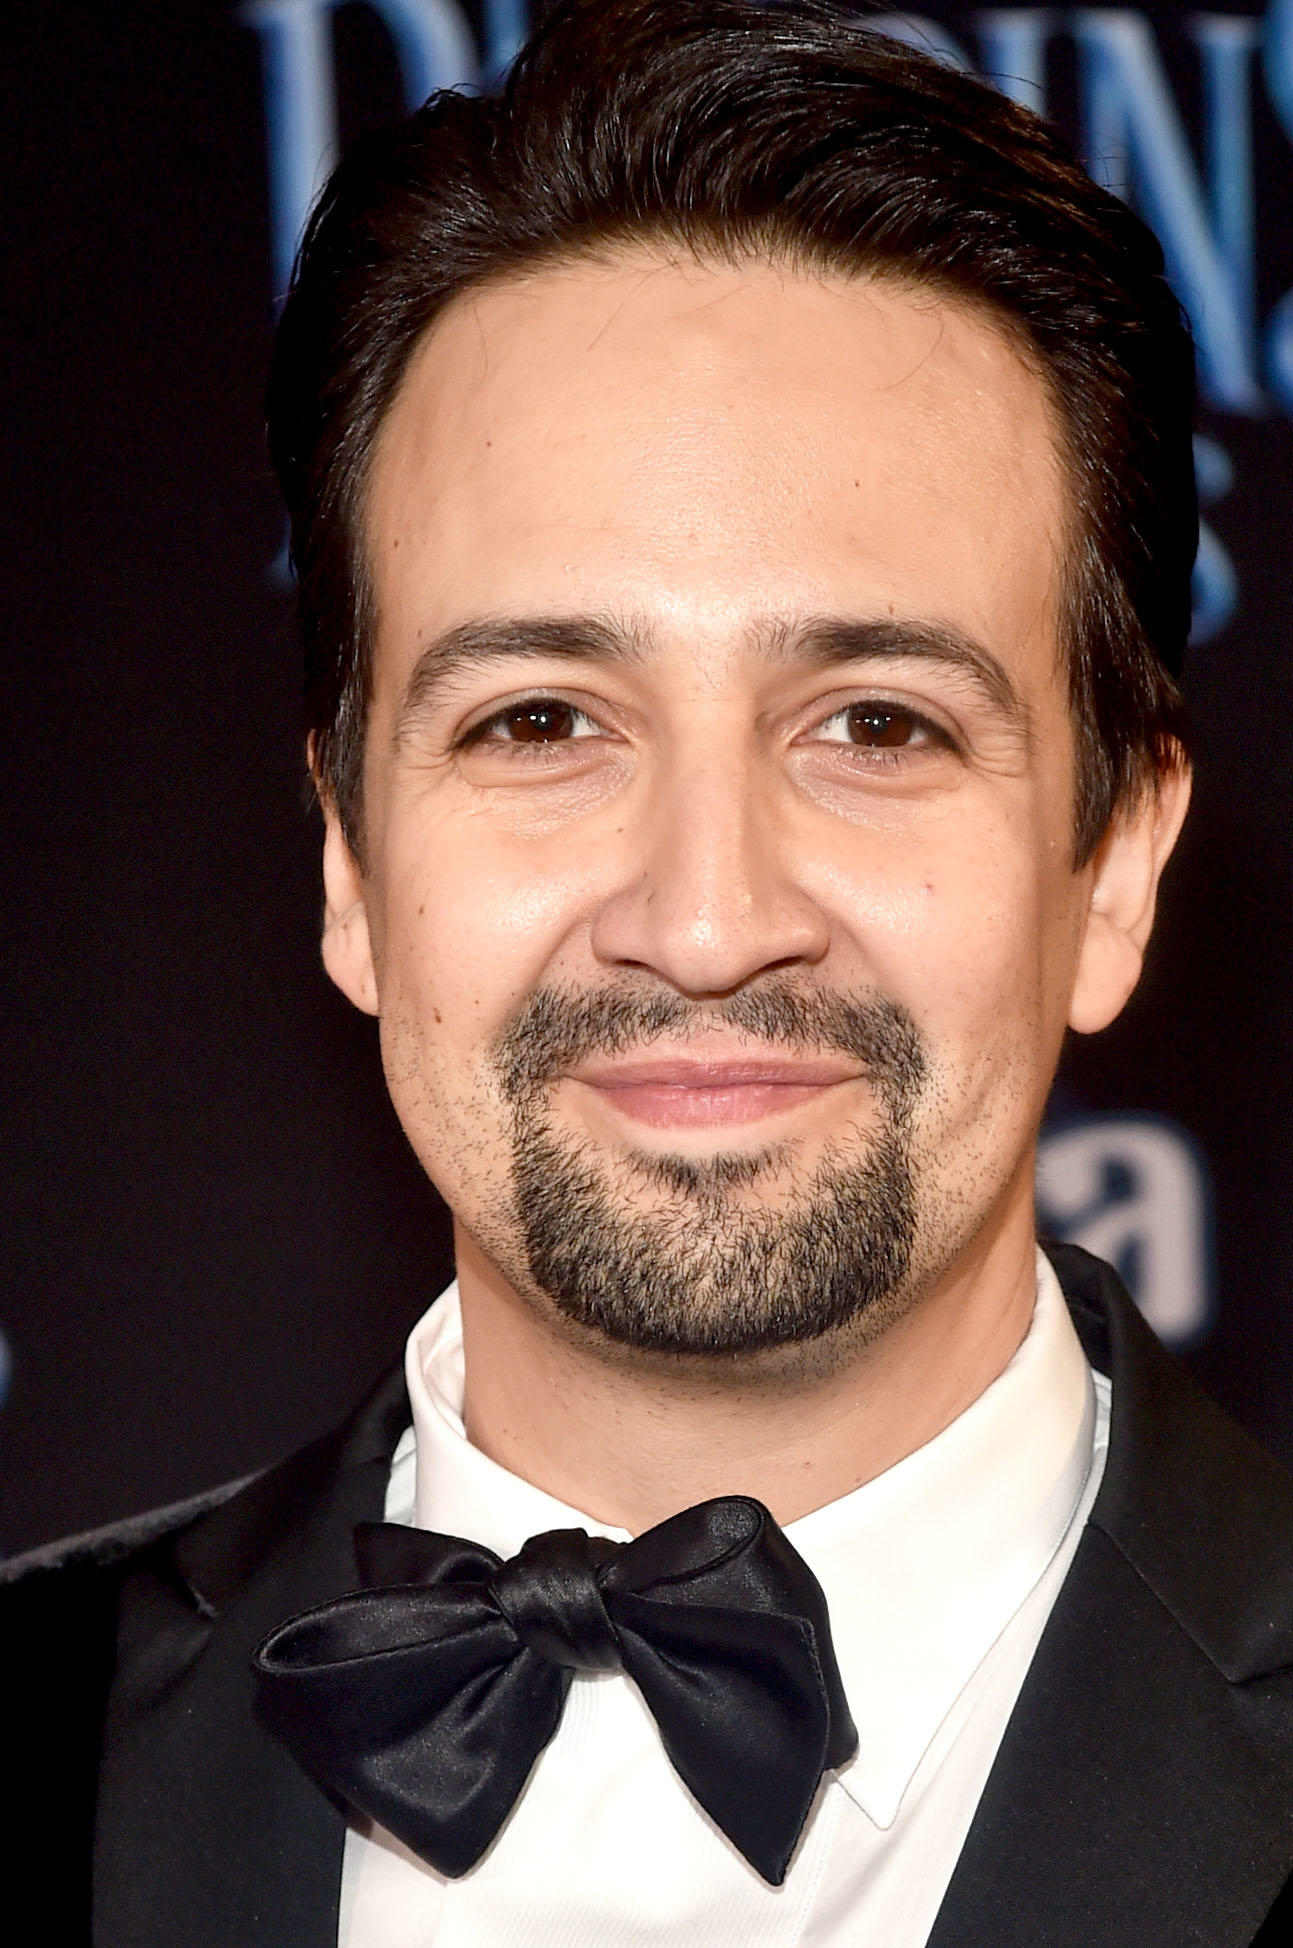 Lin-Manuel Miranda at the premiere of